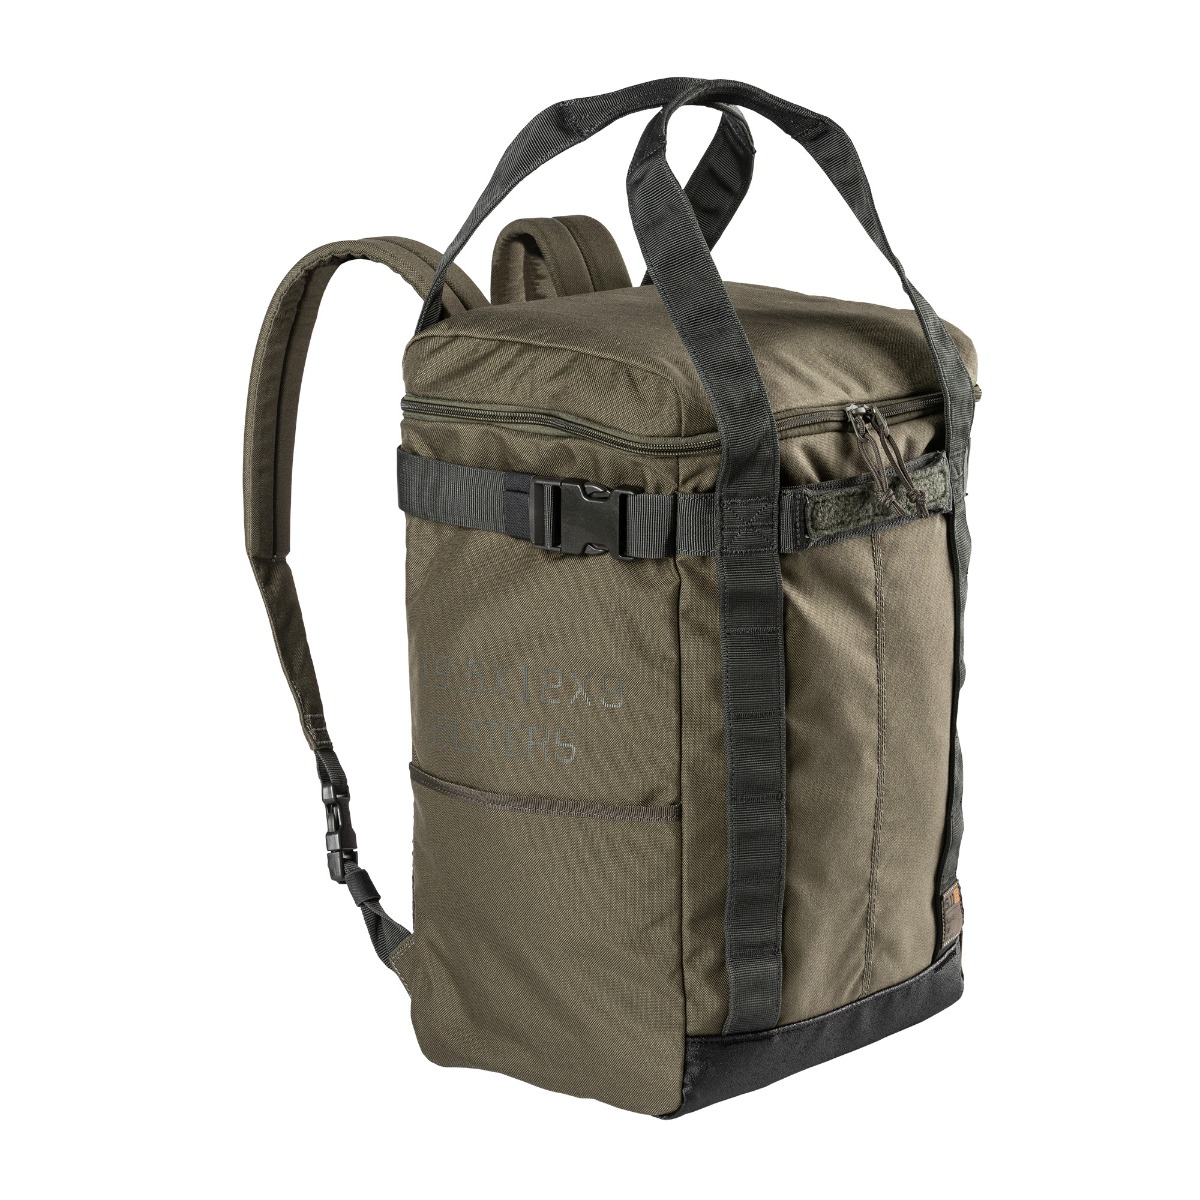 Balo LOAD READY HAUL PACK 35L - Ranger Green